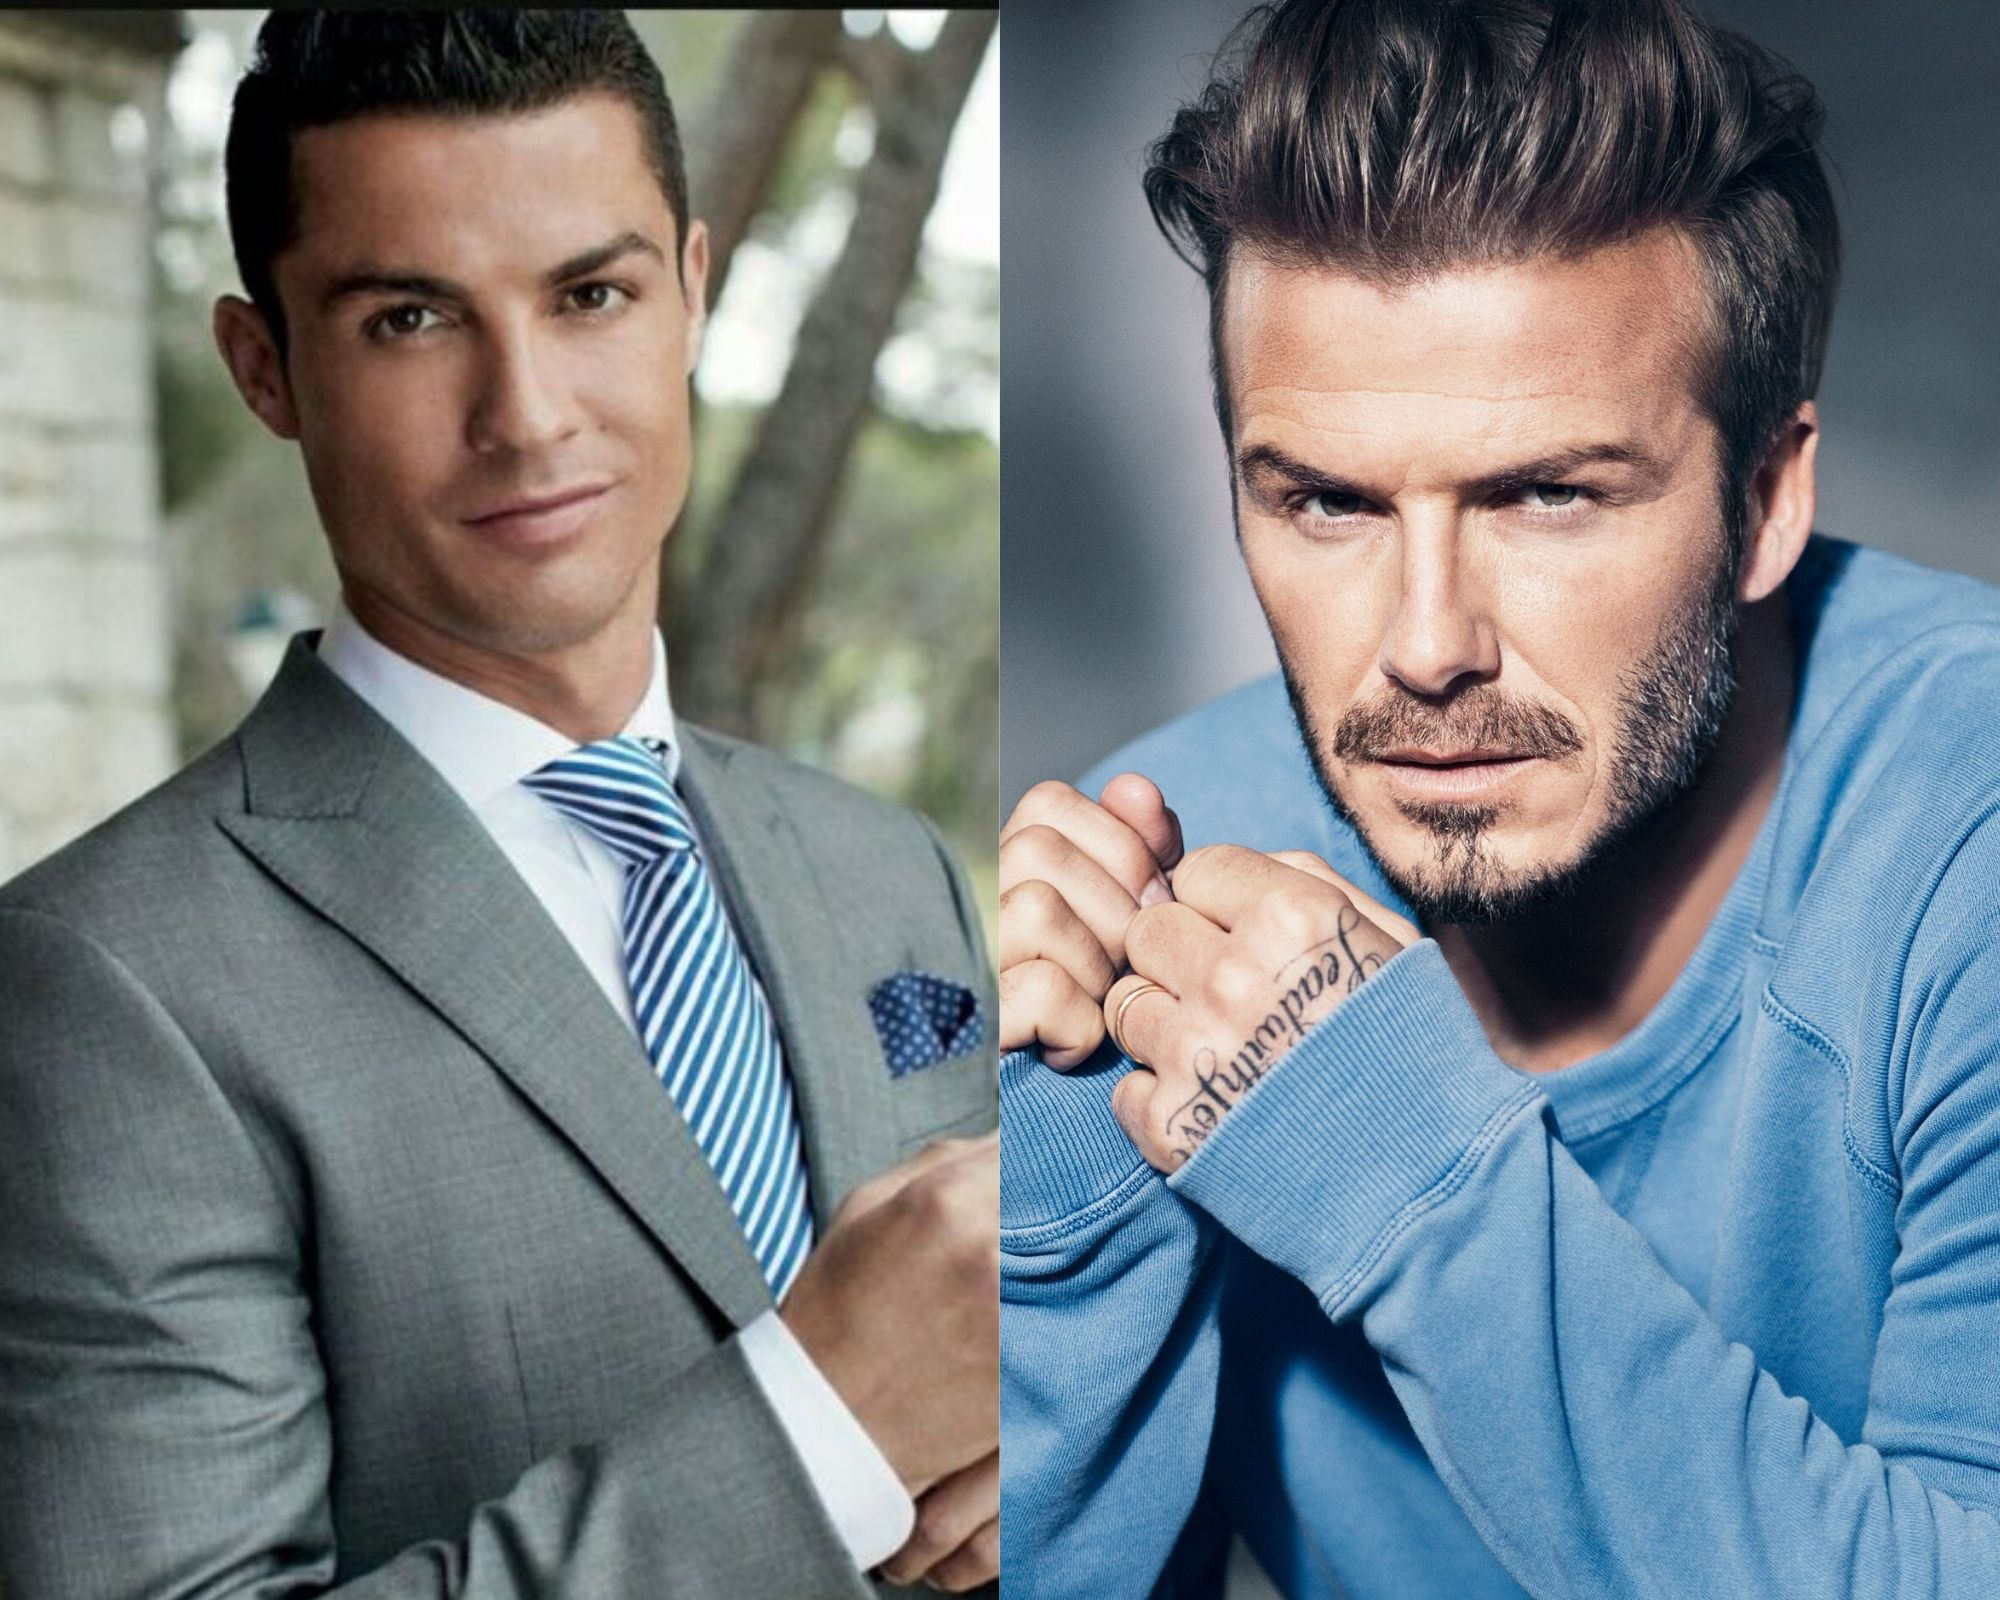 Top 15 Most Handsome Athletes in the world 2020: Checkout!